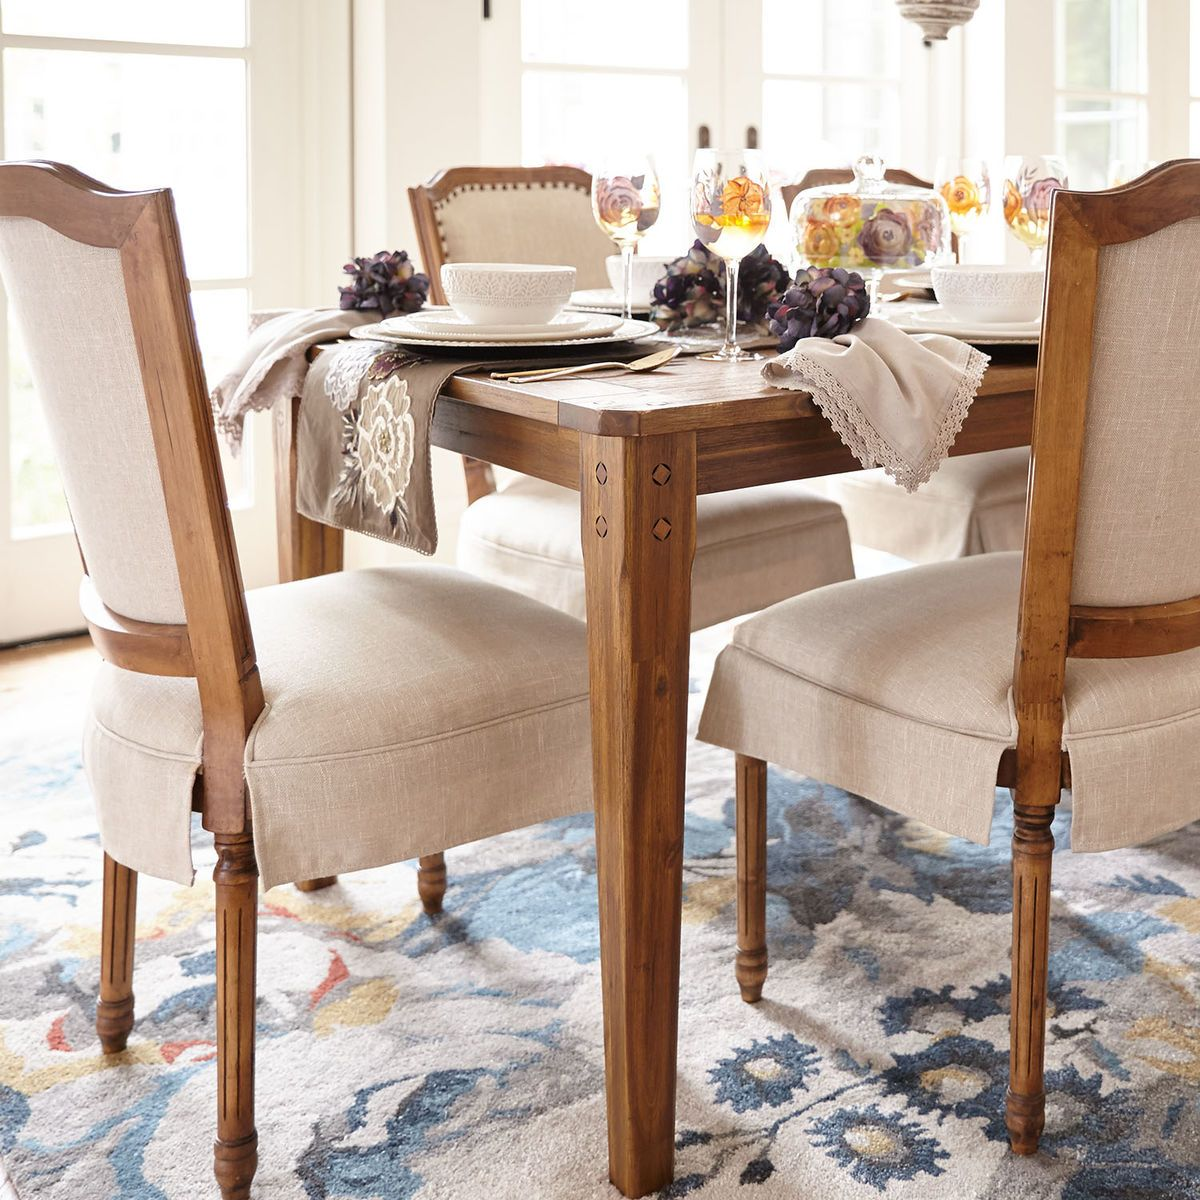 Sadie Java Dining Chair Pier 1 Imports Dining Room Furniture Dining Room Chairs Dining Room Decor